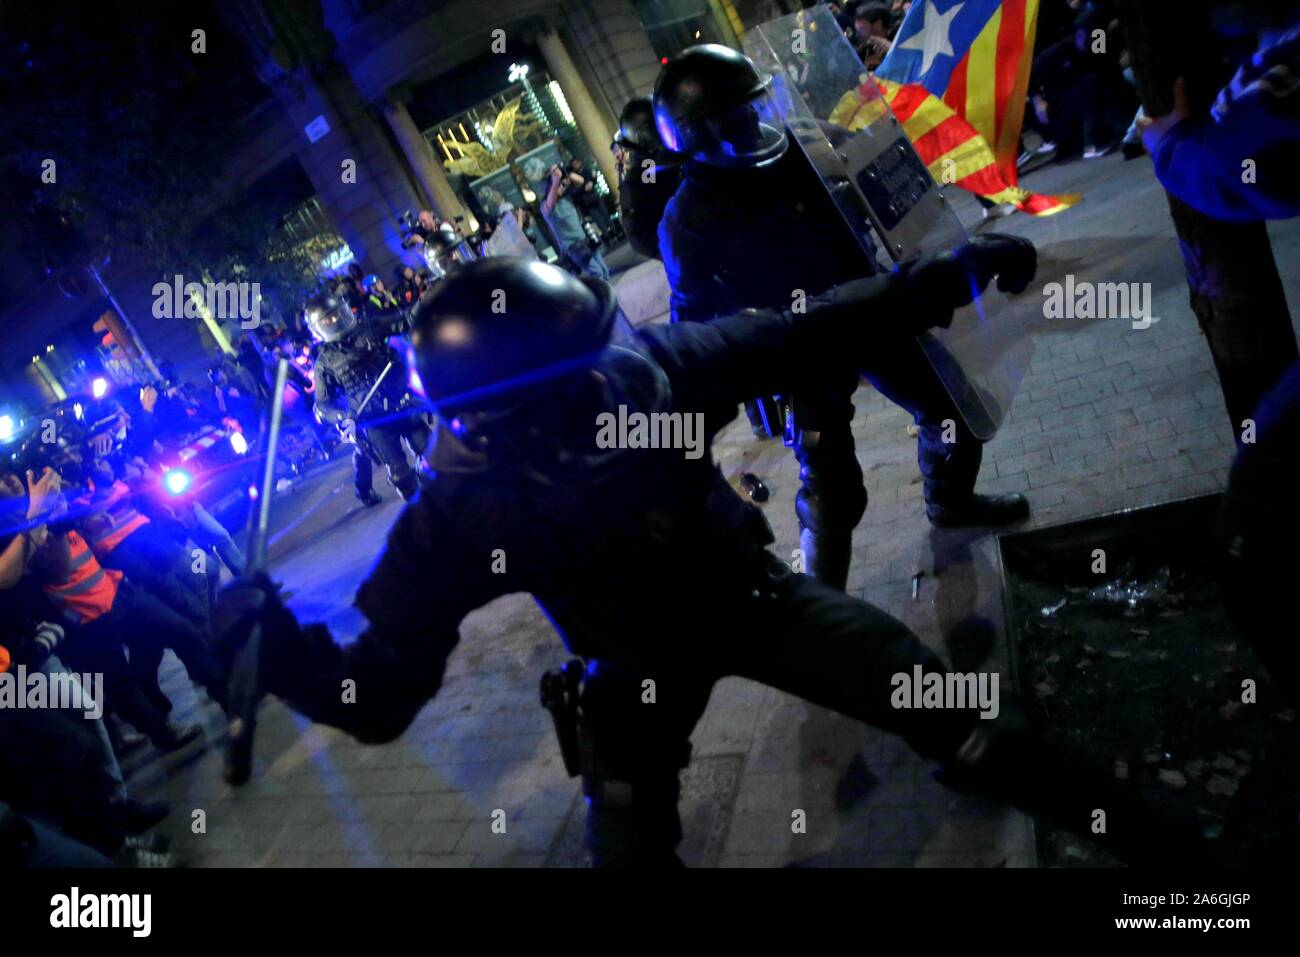 Barcelona, Spain. 26th Oct, 2019. Barcelona, Catalunya, Spain, 10/26/2019.- Police charge against protesters in the streets of Barcelona after the demonstration called freedom.Credit: Juan Carlos Rojas/Picture Alliance | usage worldwide/dpa/Alamy Live News Stock Photo